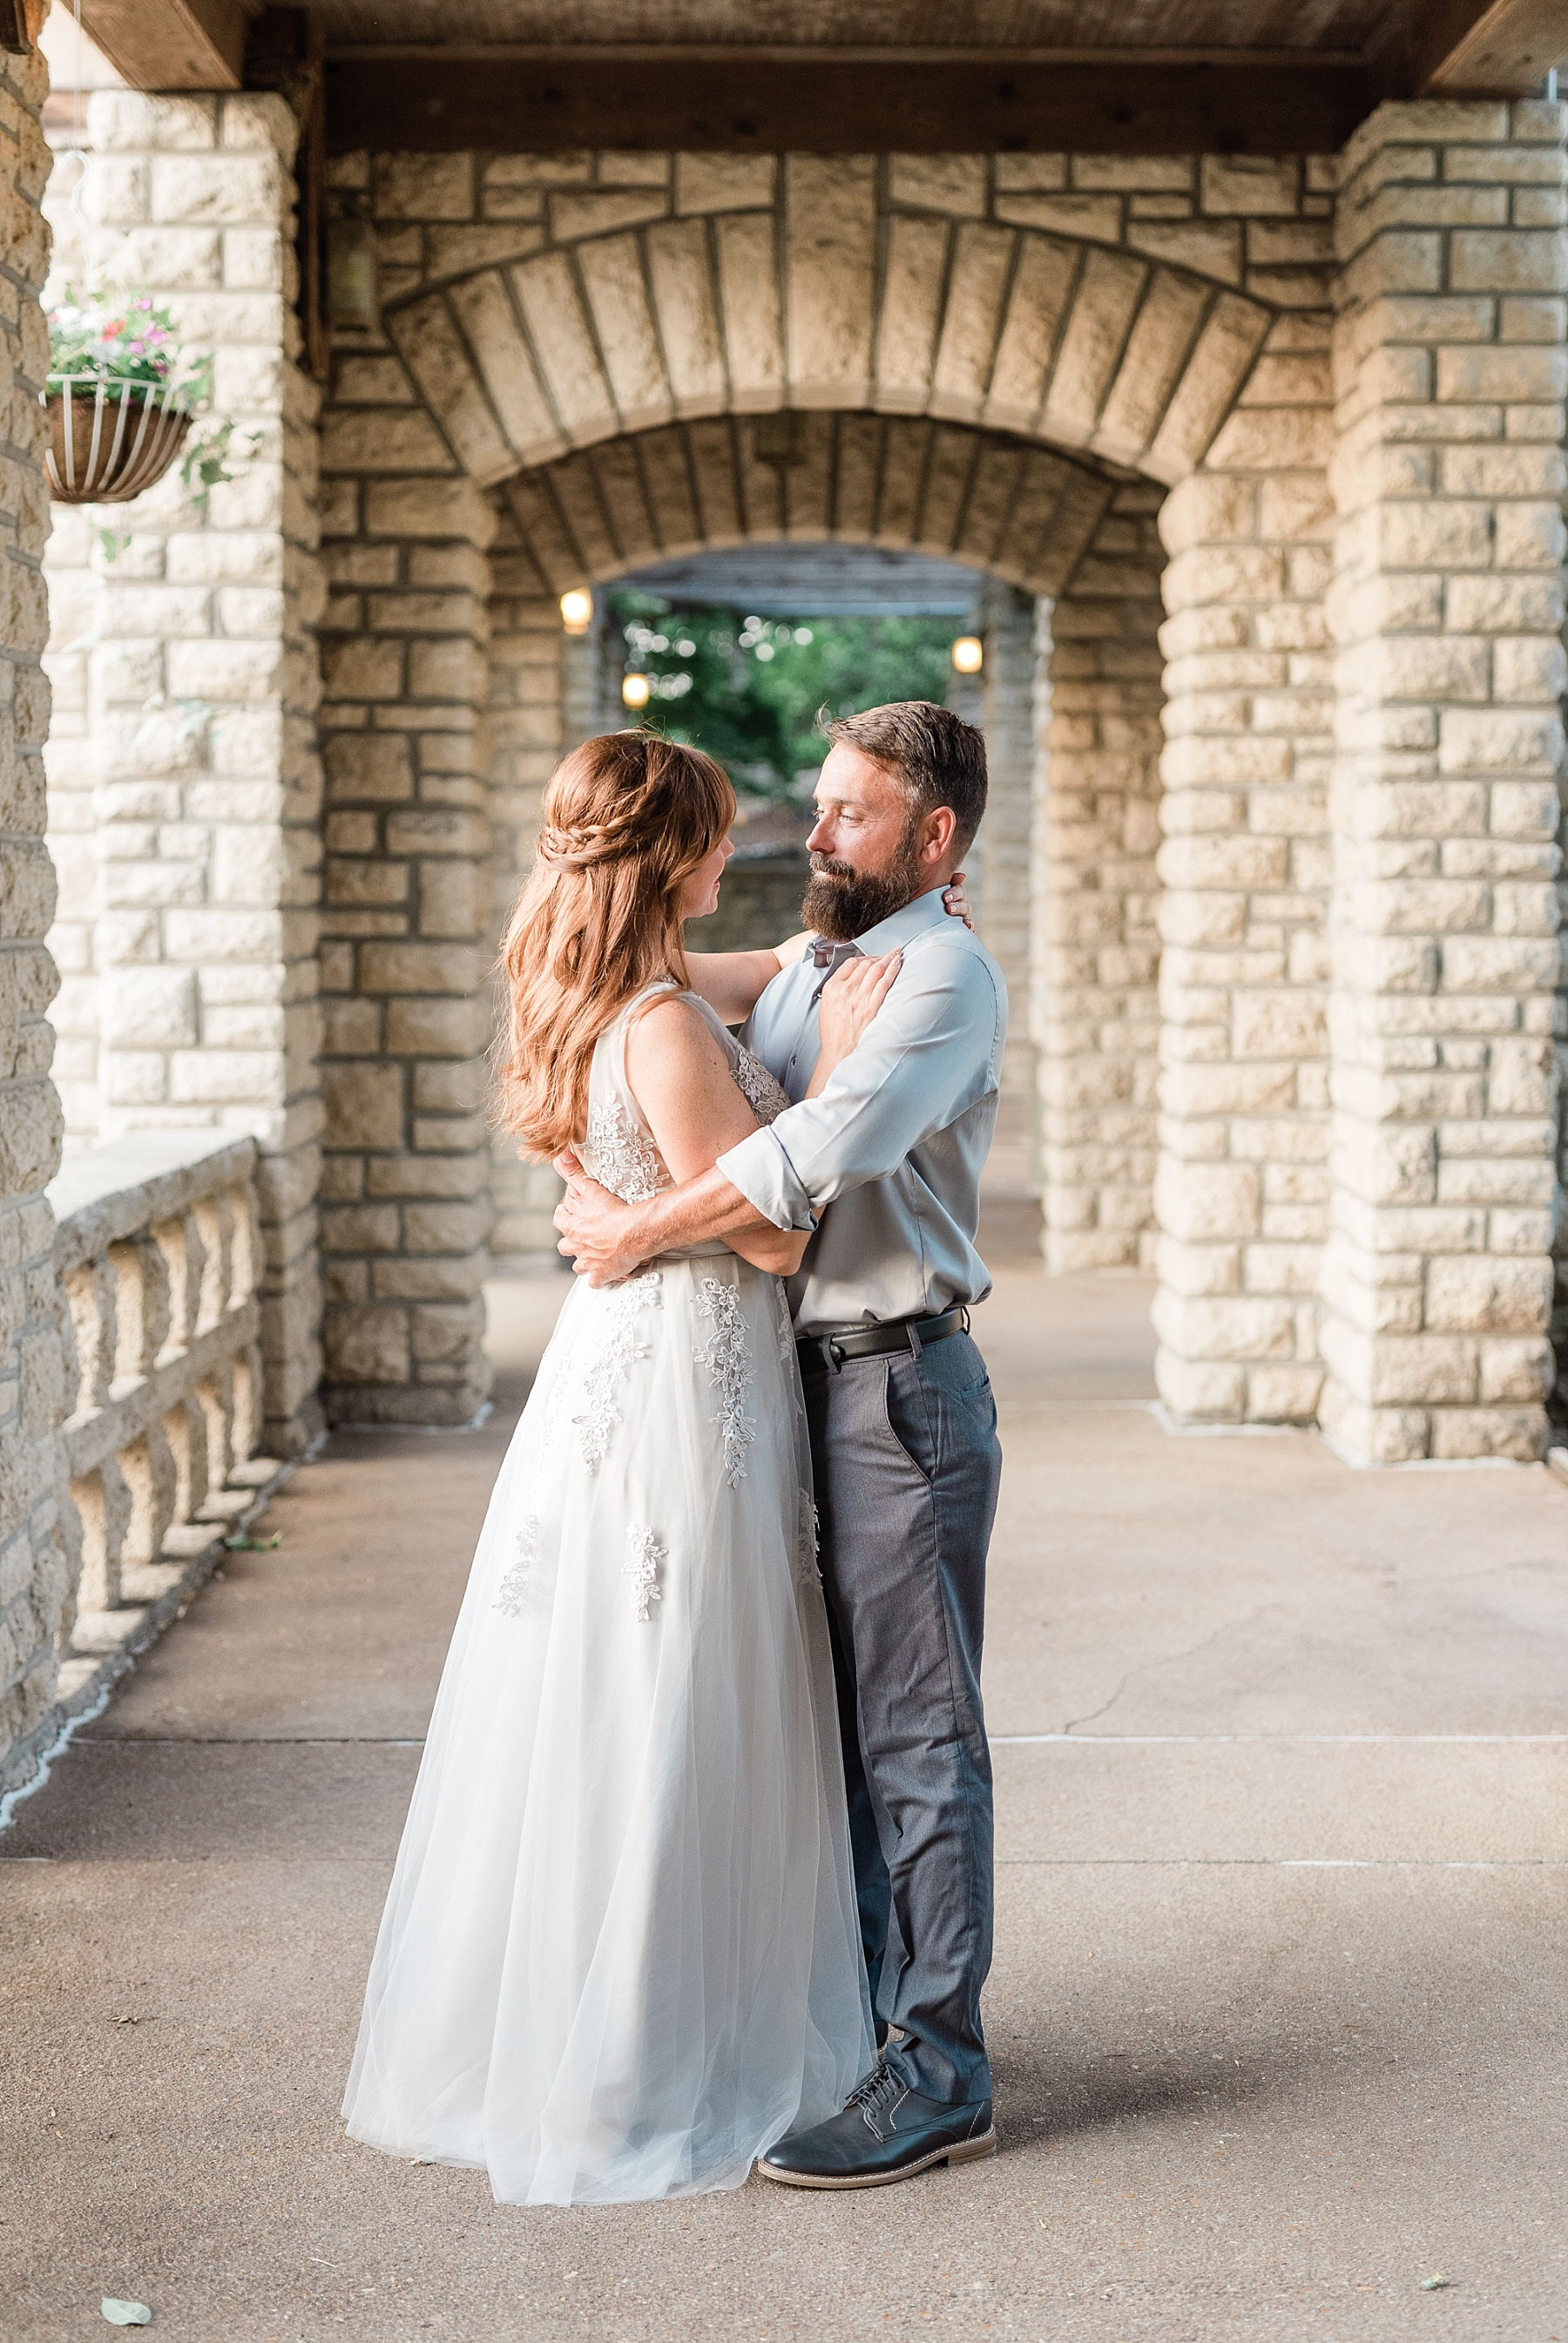 Chuck and Julie 25th Anniversary in Silver at Missouri Governor's Gardens by Kelsi Kliethermes Photography_0011.jpg